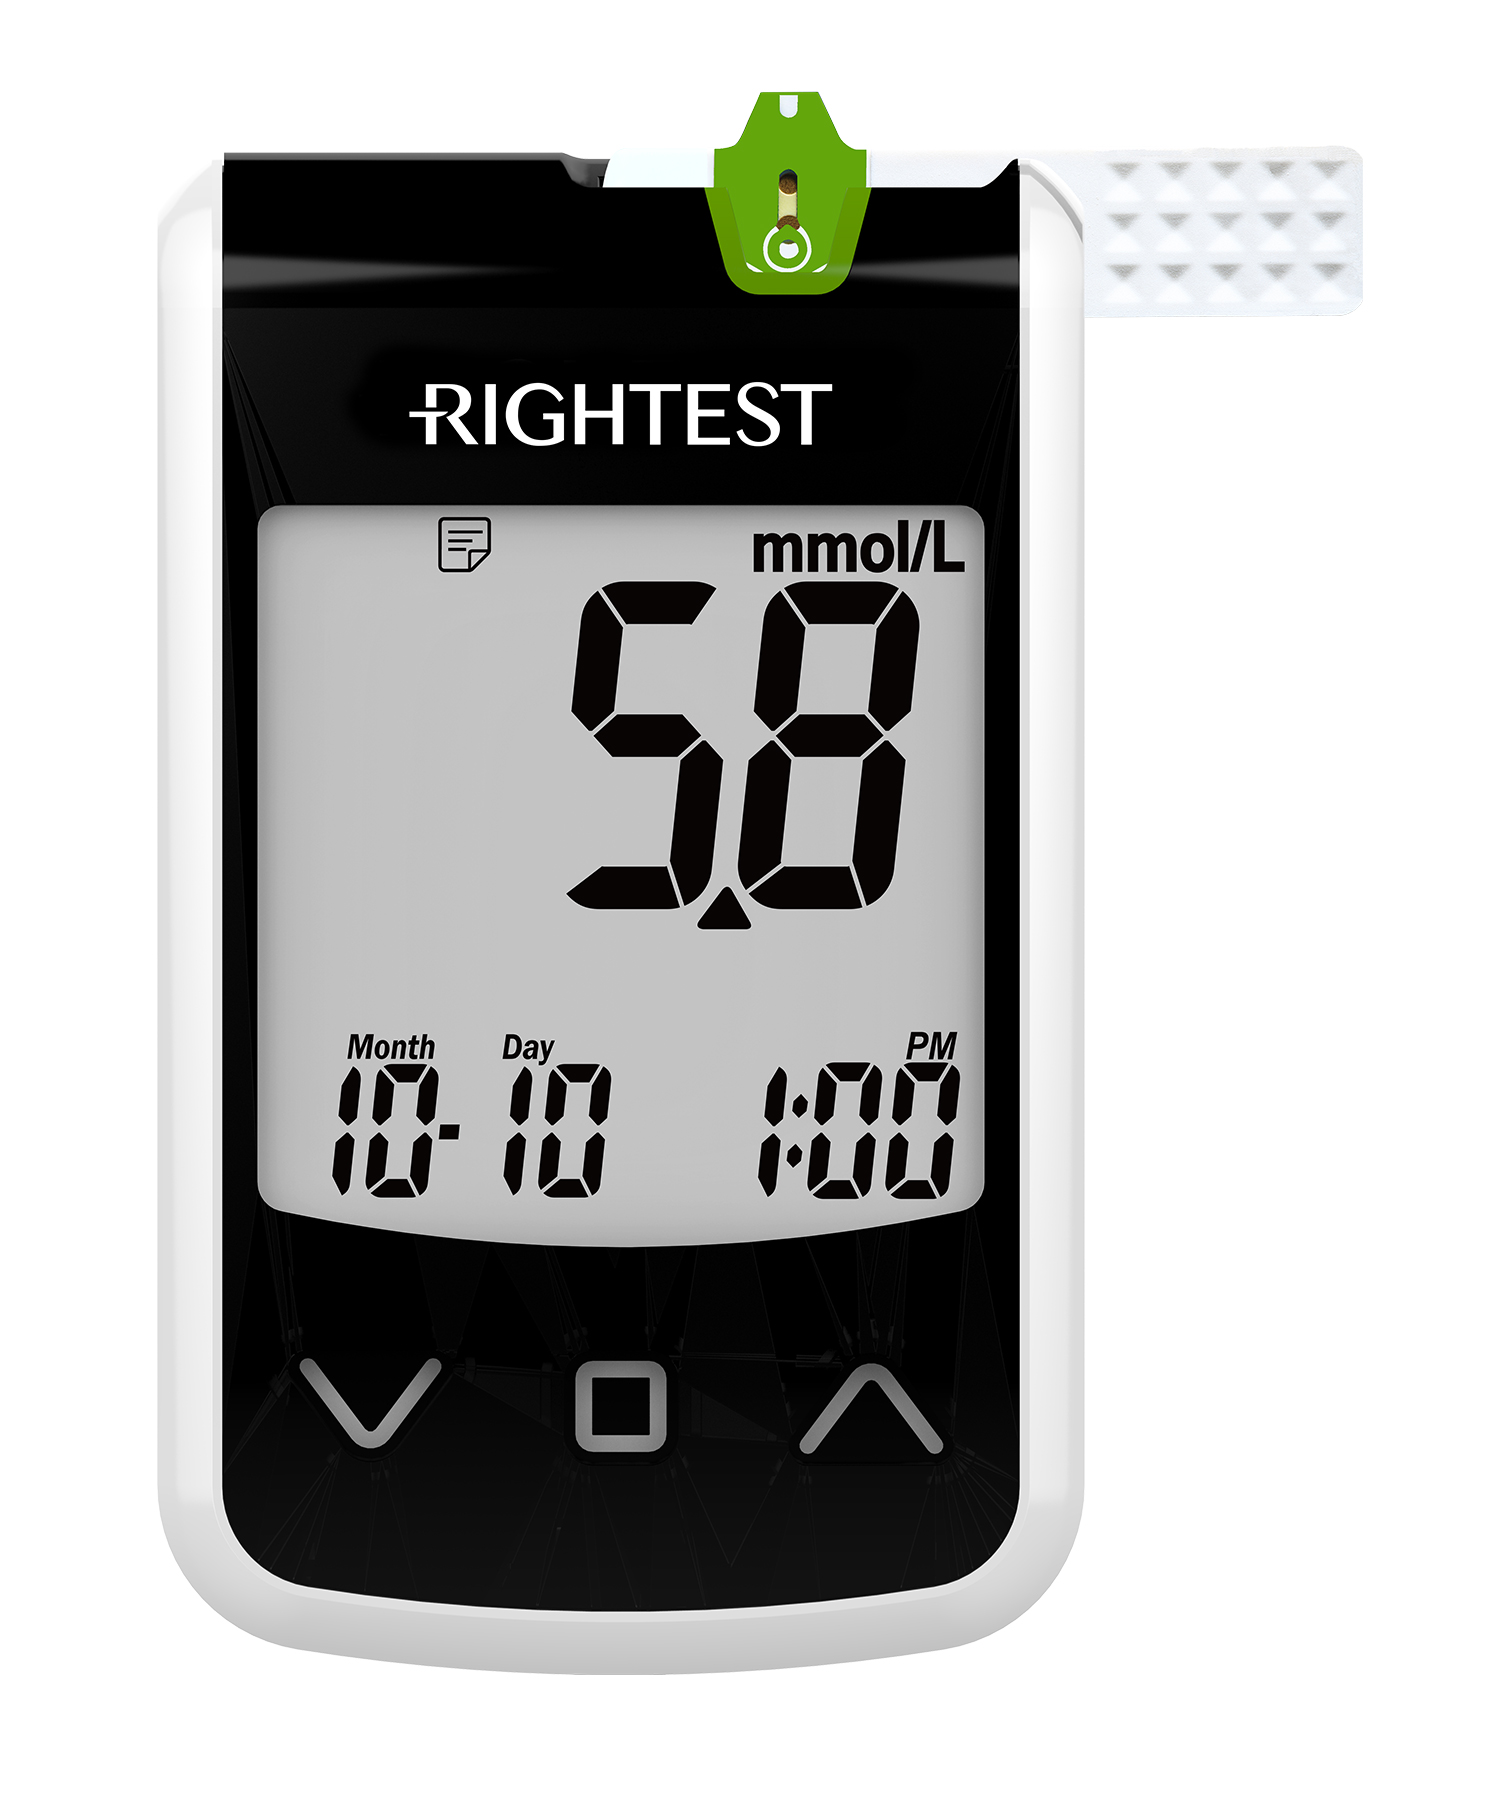 pro-img/05_Wiz/en/Wiz-strip(mmol)-Rightest-glucose-meter.jpg